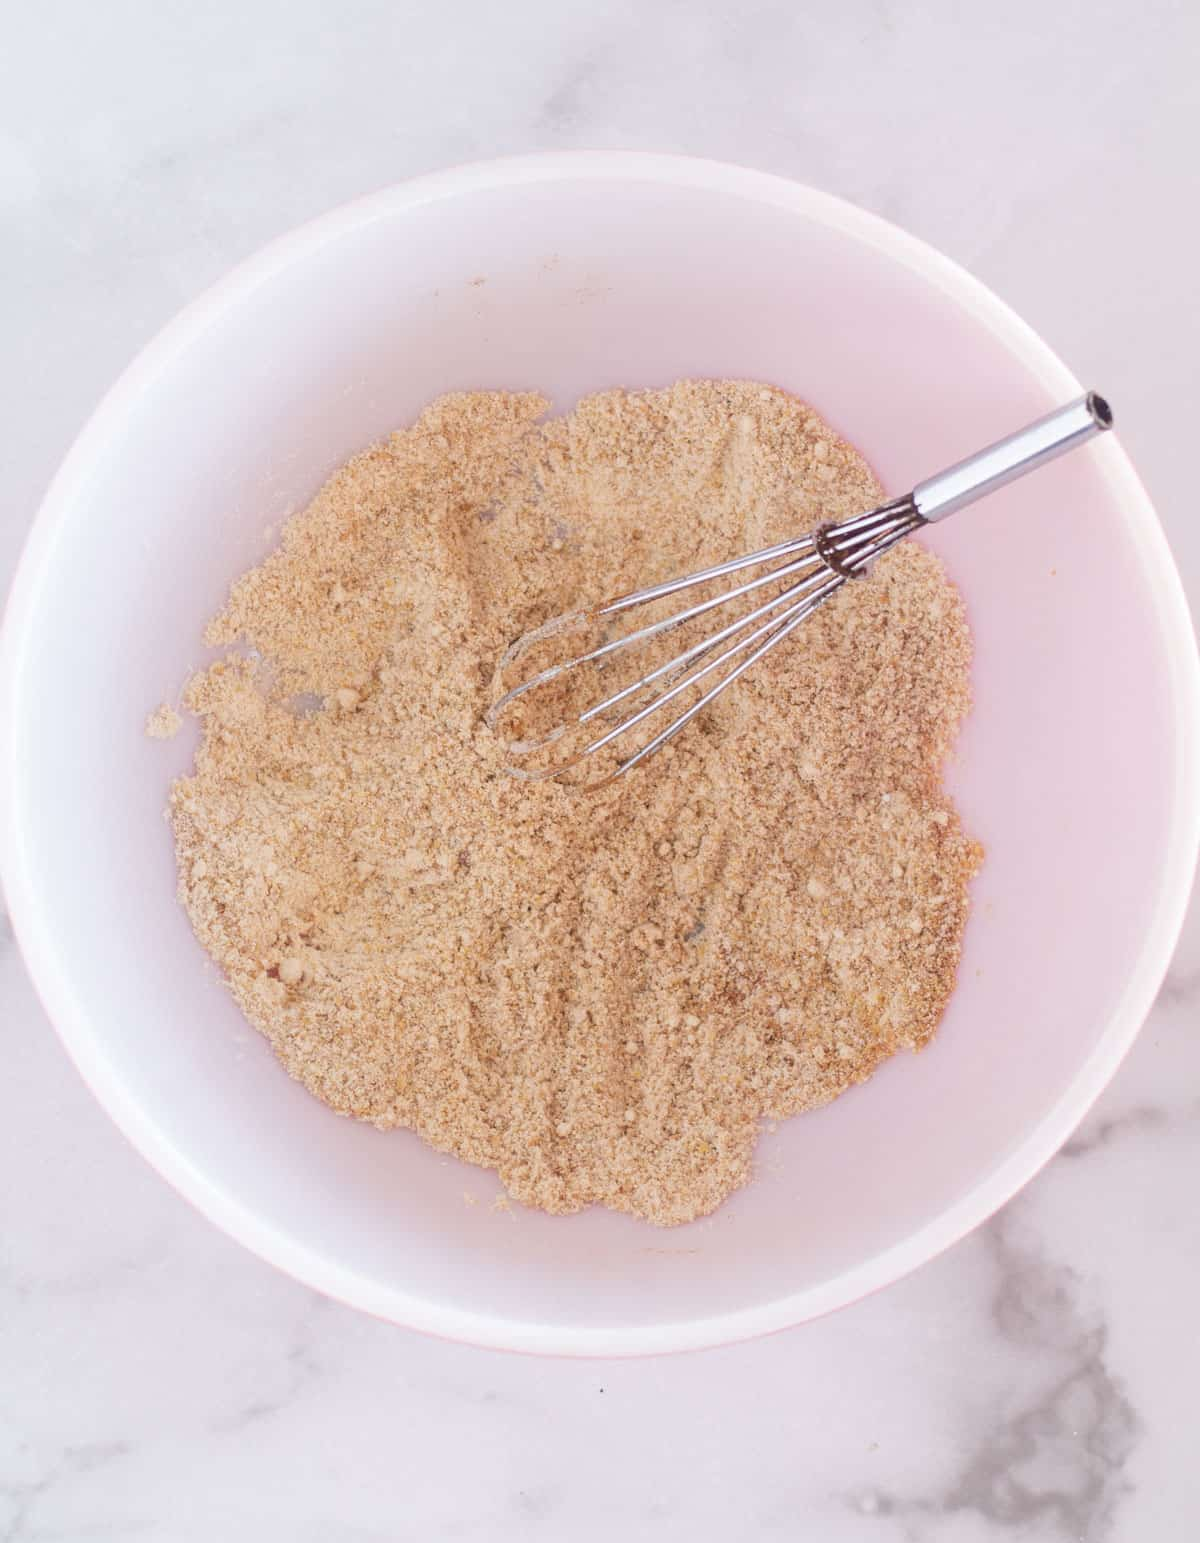 dry ingredients in bowl with whisk